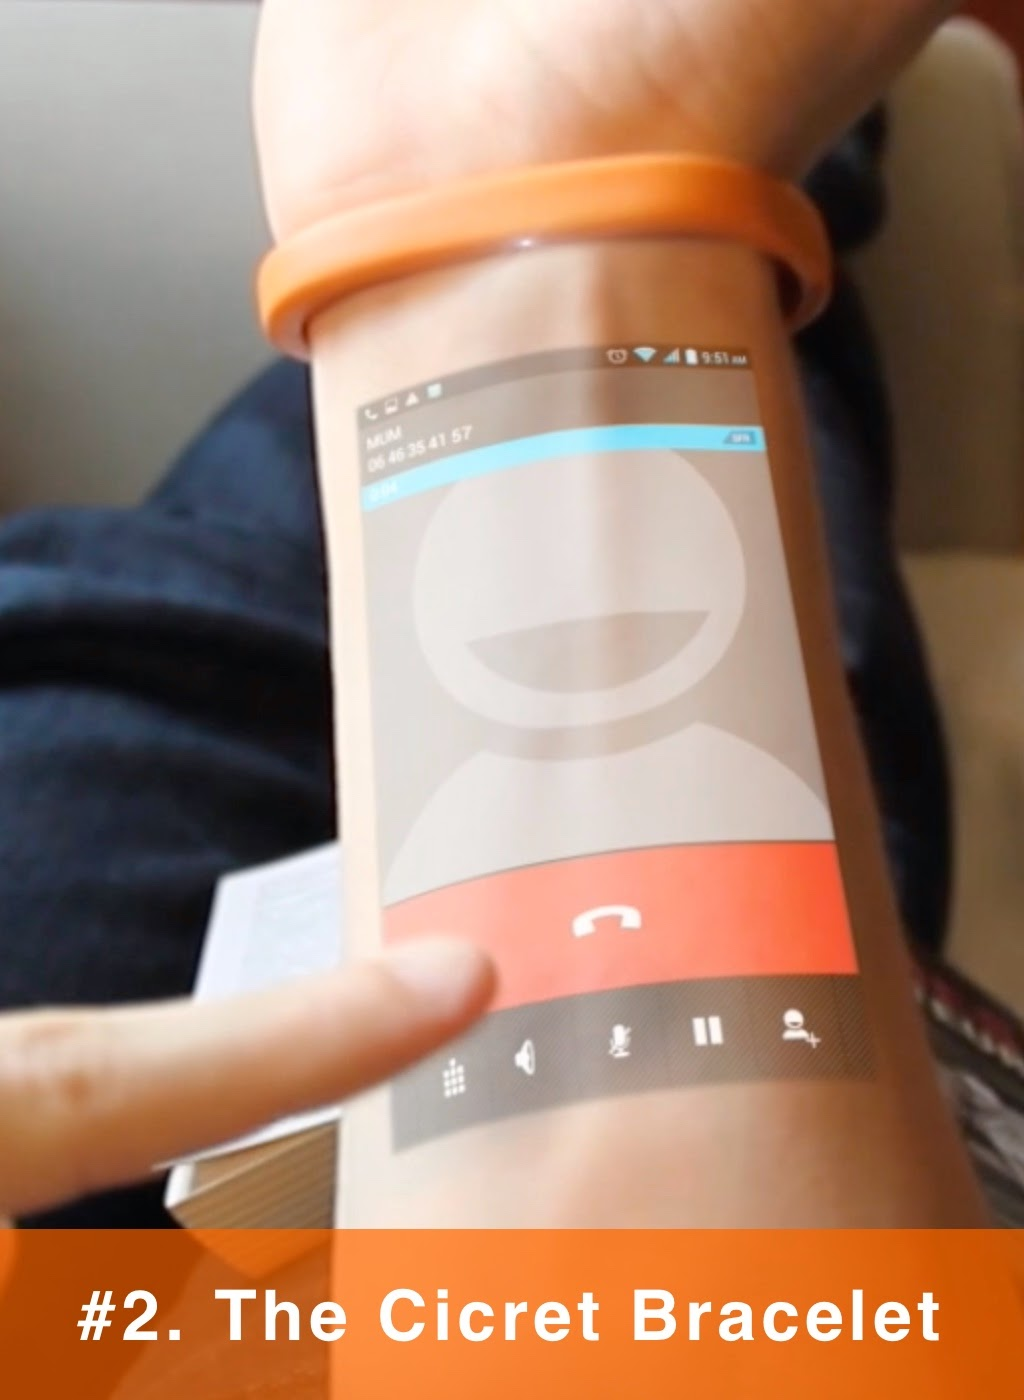 The Cicret Bracelet: It's like a tablet...but on your skin